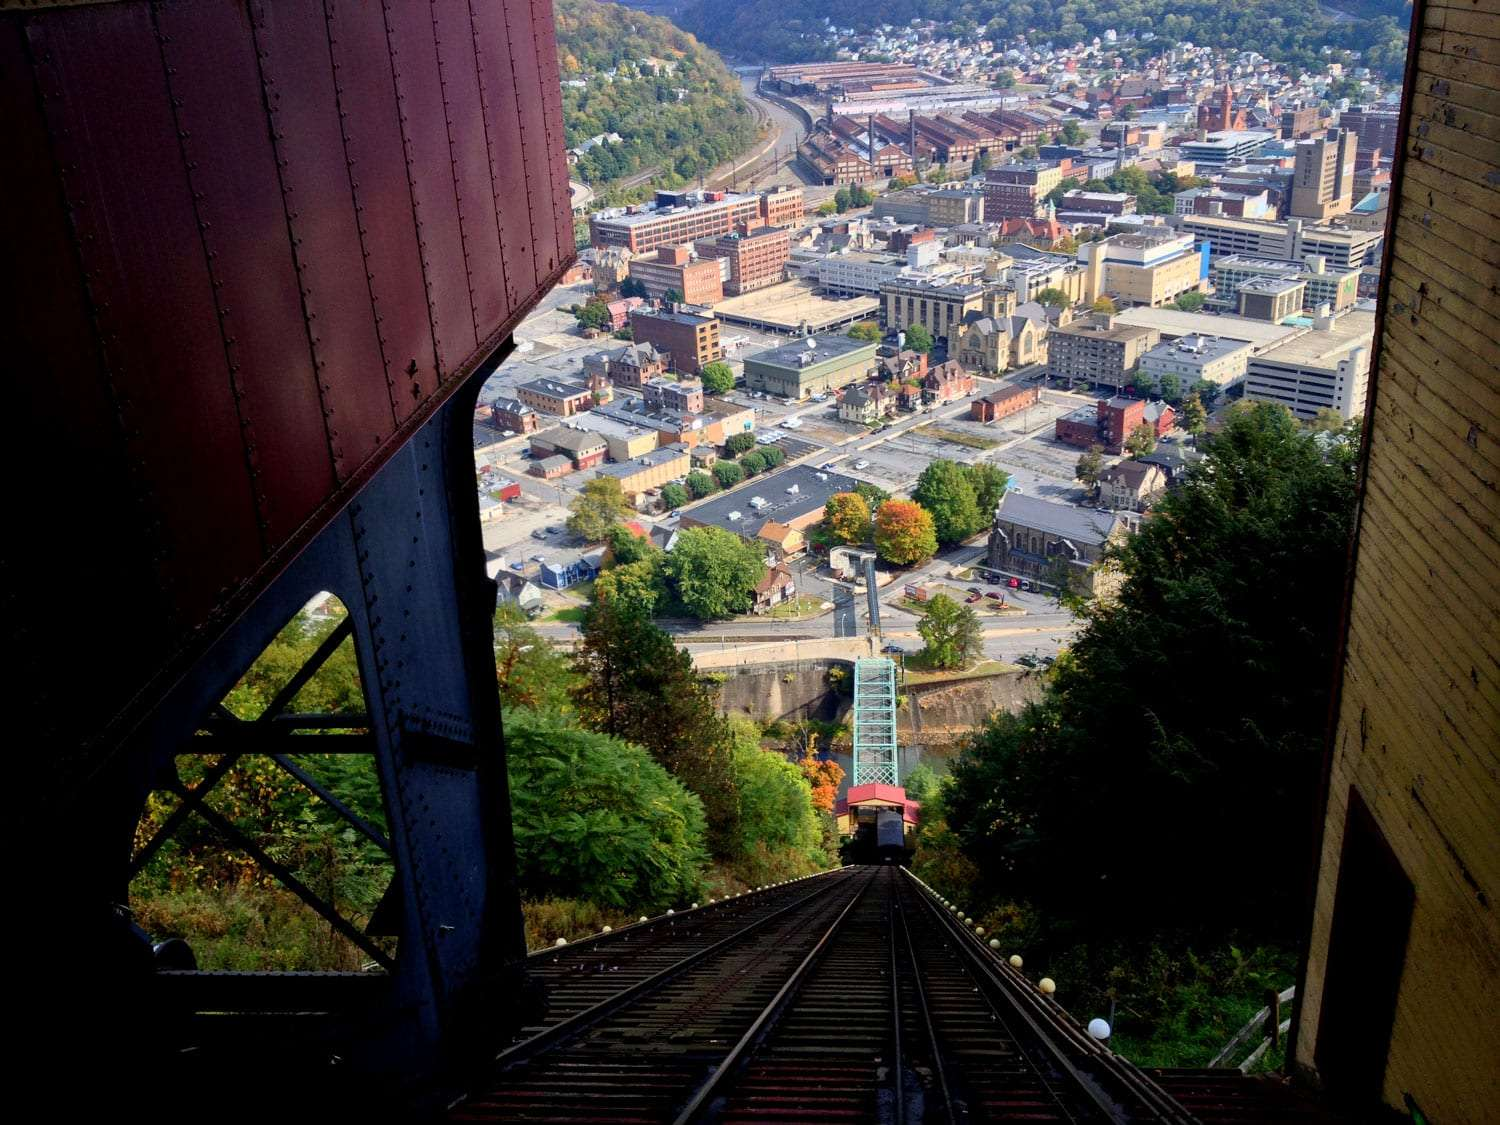 a stack of buildings toppling over like it hadn't been dusted since 1972 fills a tree-lined valley, a turquoise bridge glows as a funicular elevates